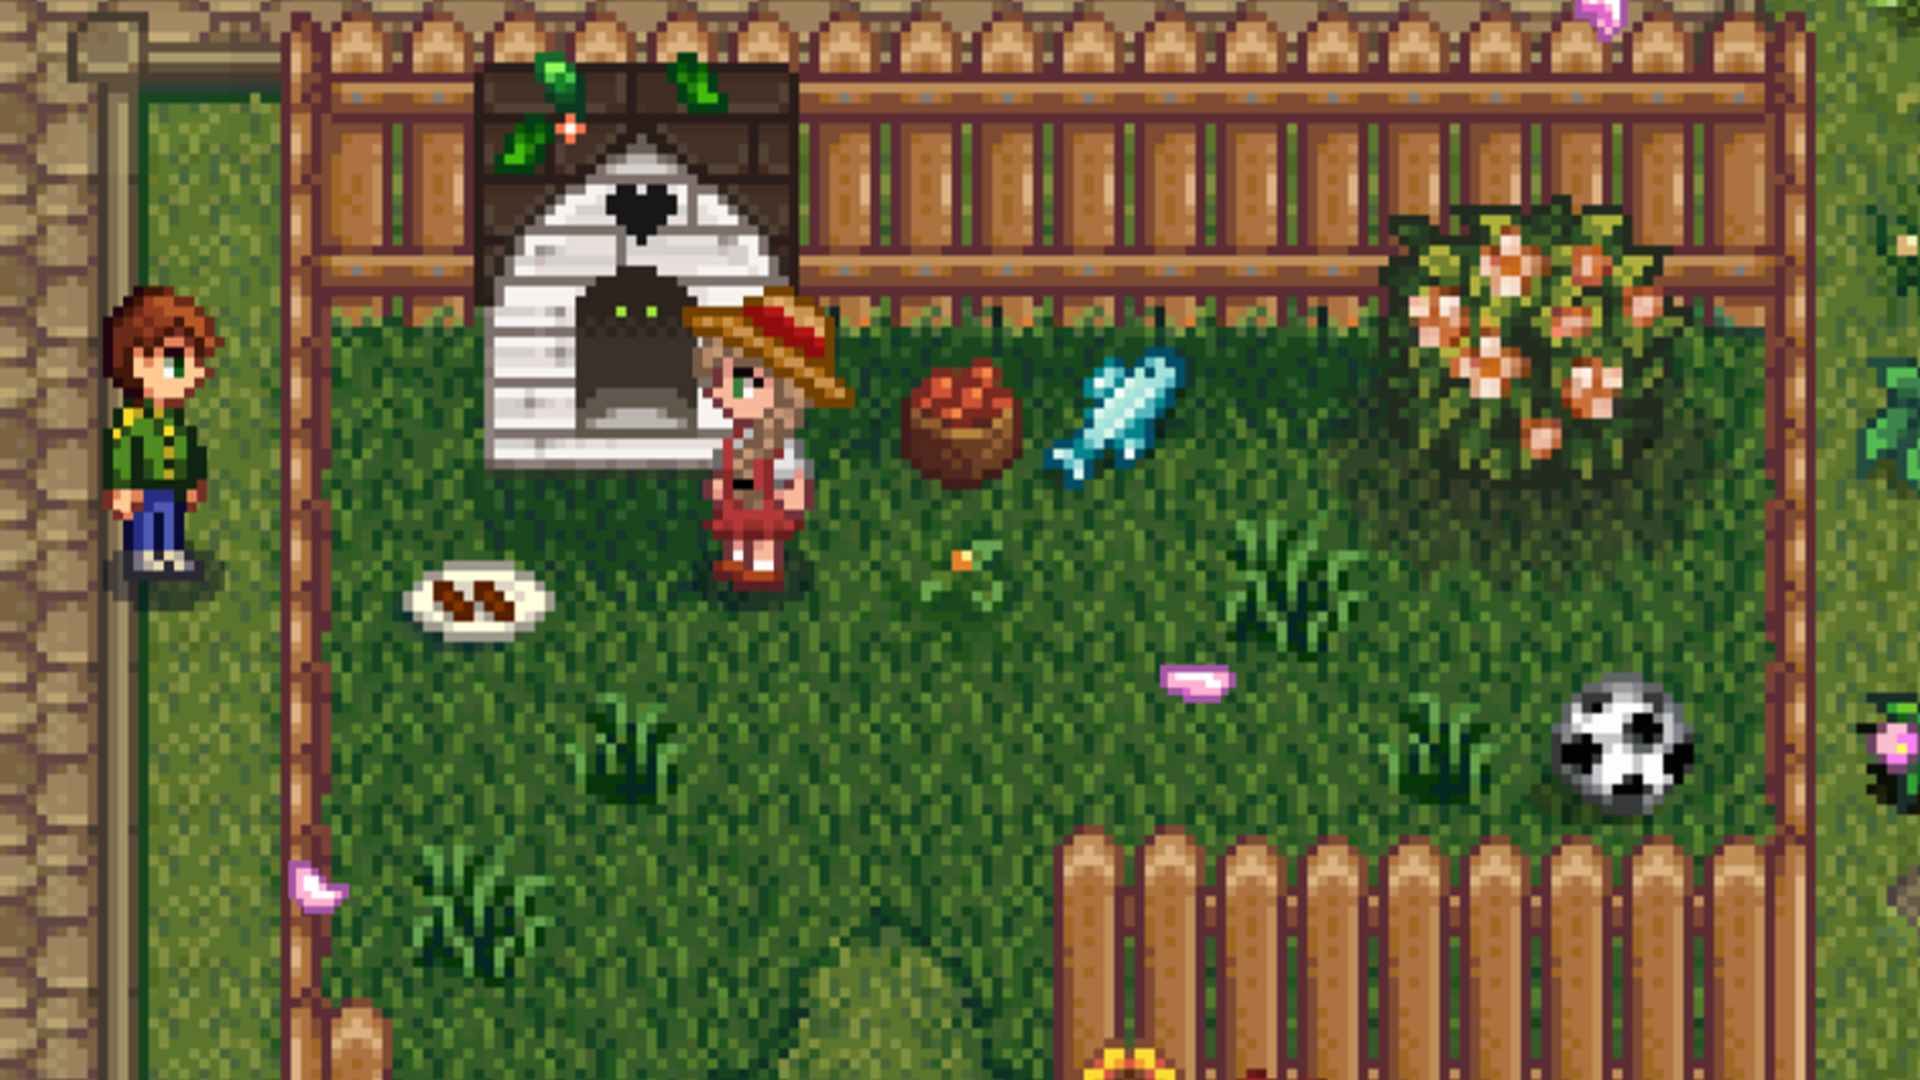 This Stardew Valley mod completely rebuilds the world with